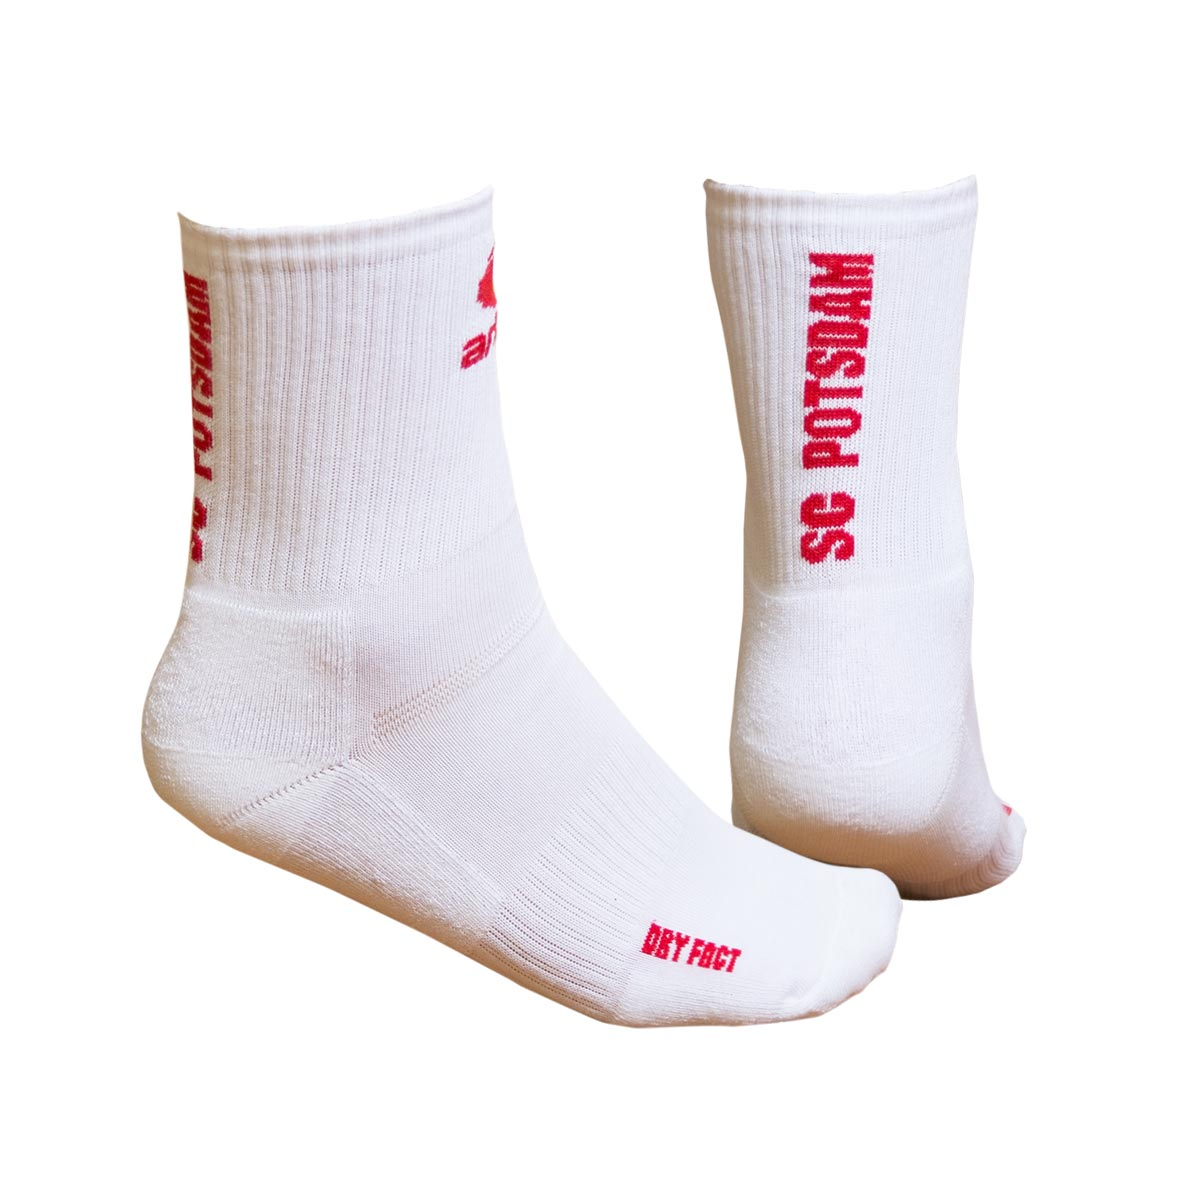 Individuelle Volleyball-Socken kurz